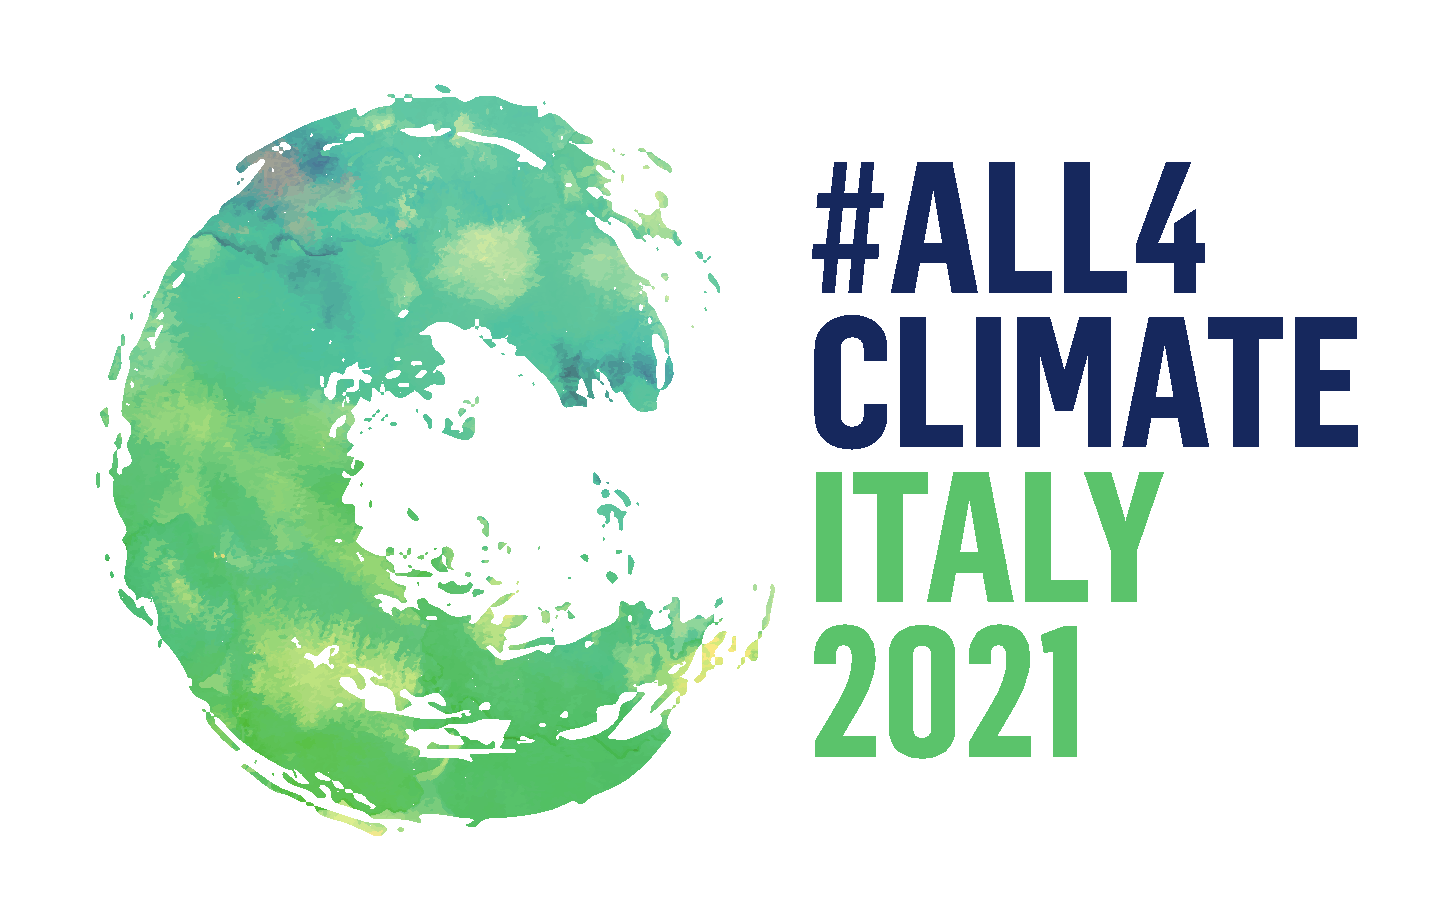 all4climate2021